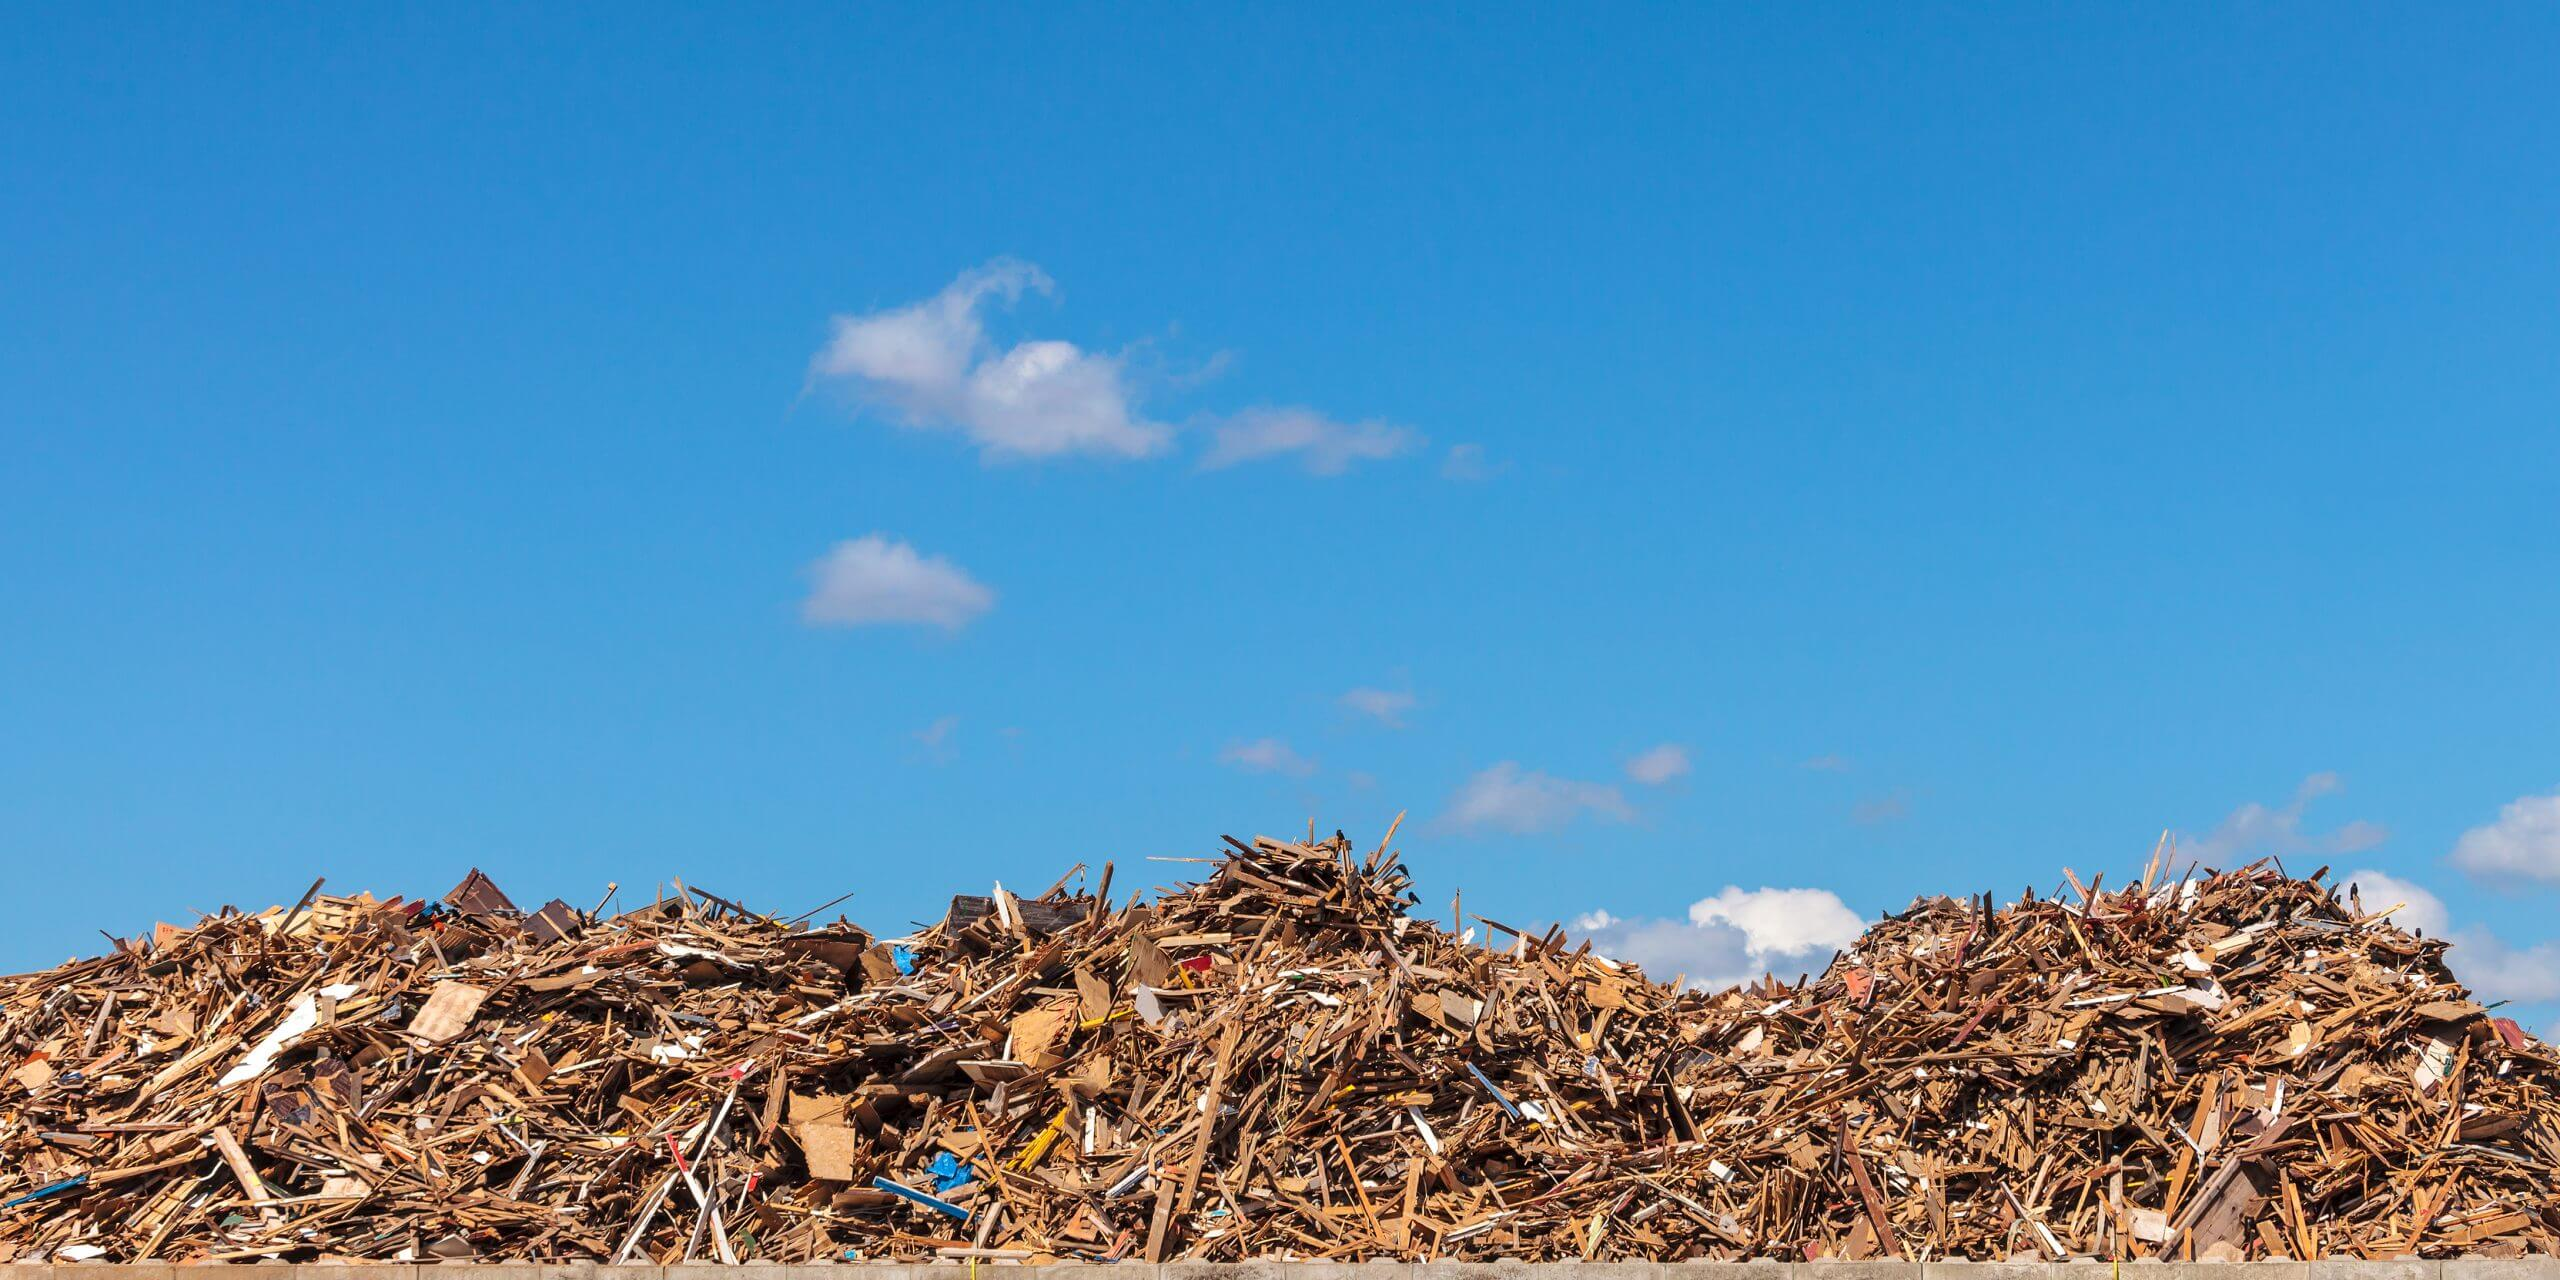 Panoramic image of a large pile of wood on a garbage depot